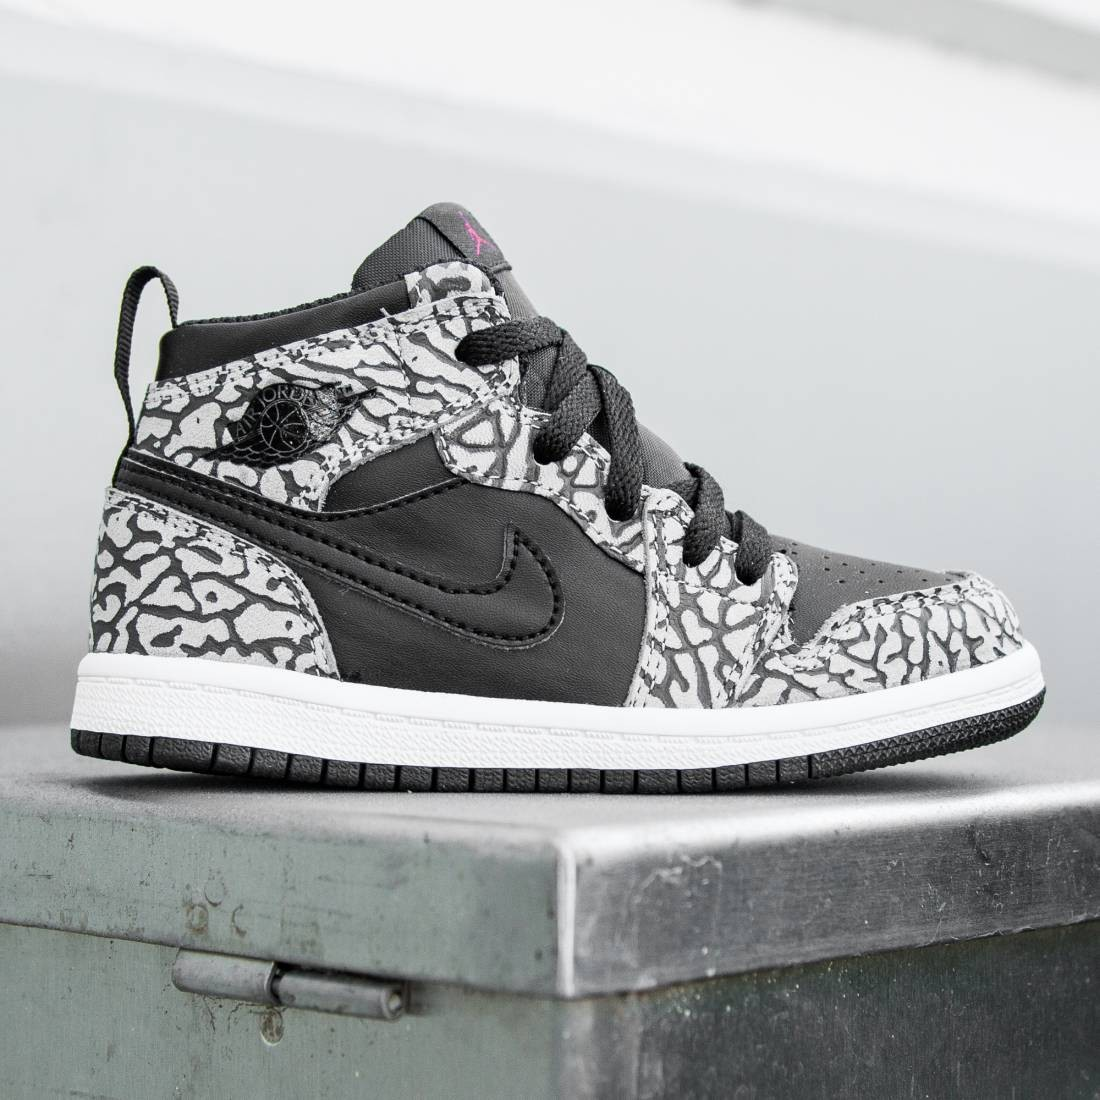 8979ba518c4 Jordan Toddlers Air Jordan 1 Retro High Prem BT (black / cement grey /  anthracite / gym red)